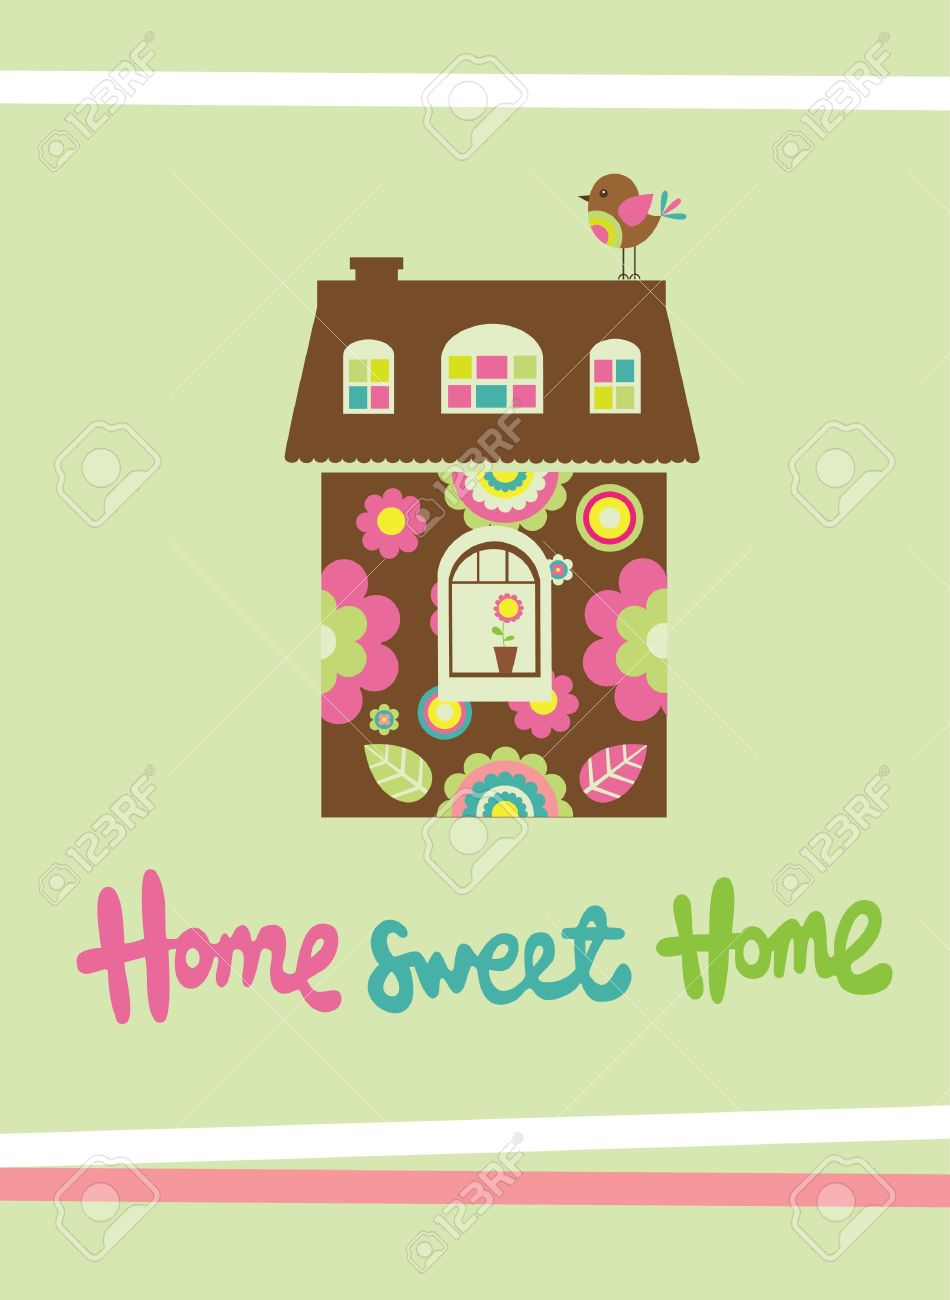 home sweet home card  vector illustration Stock Vector - 20196330